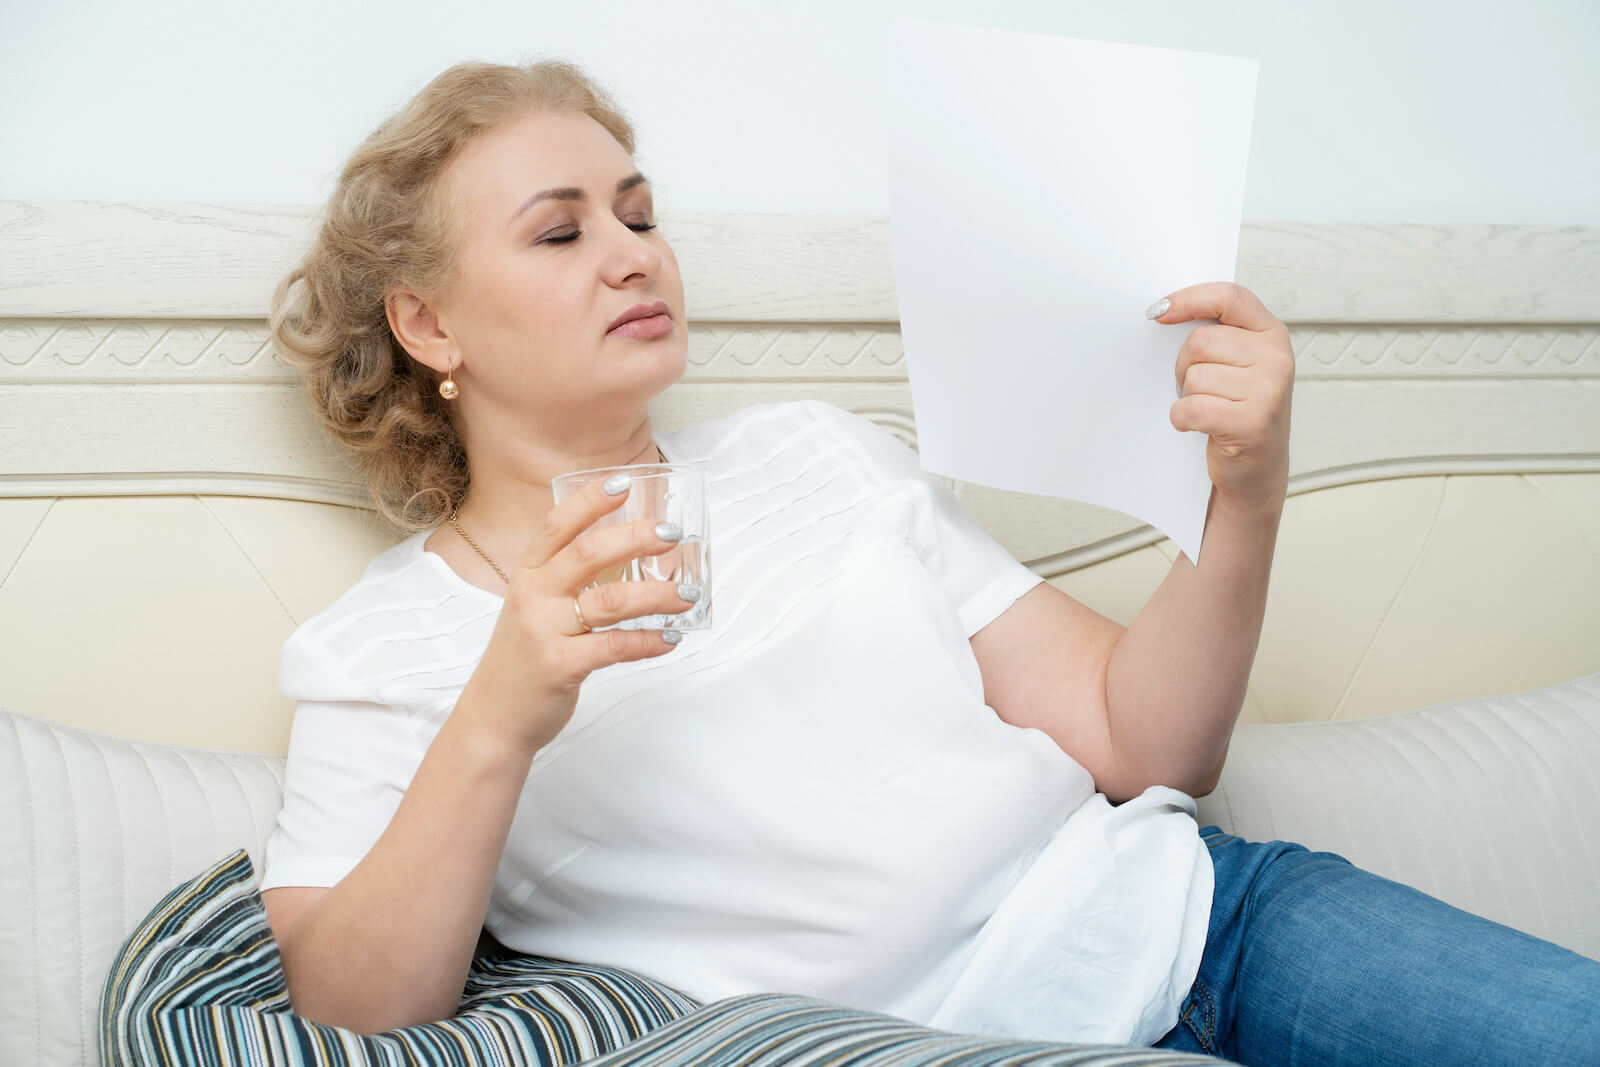 Head feels hot: middle-aged woman fanning herself